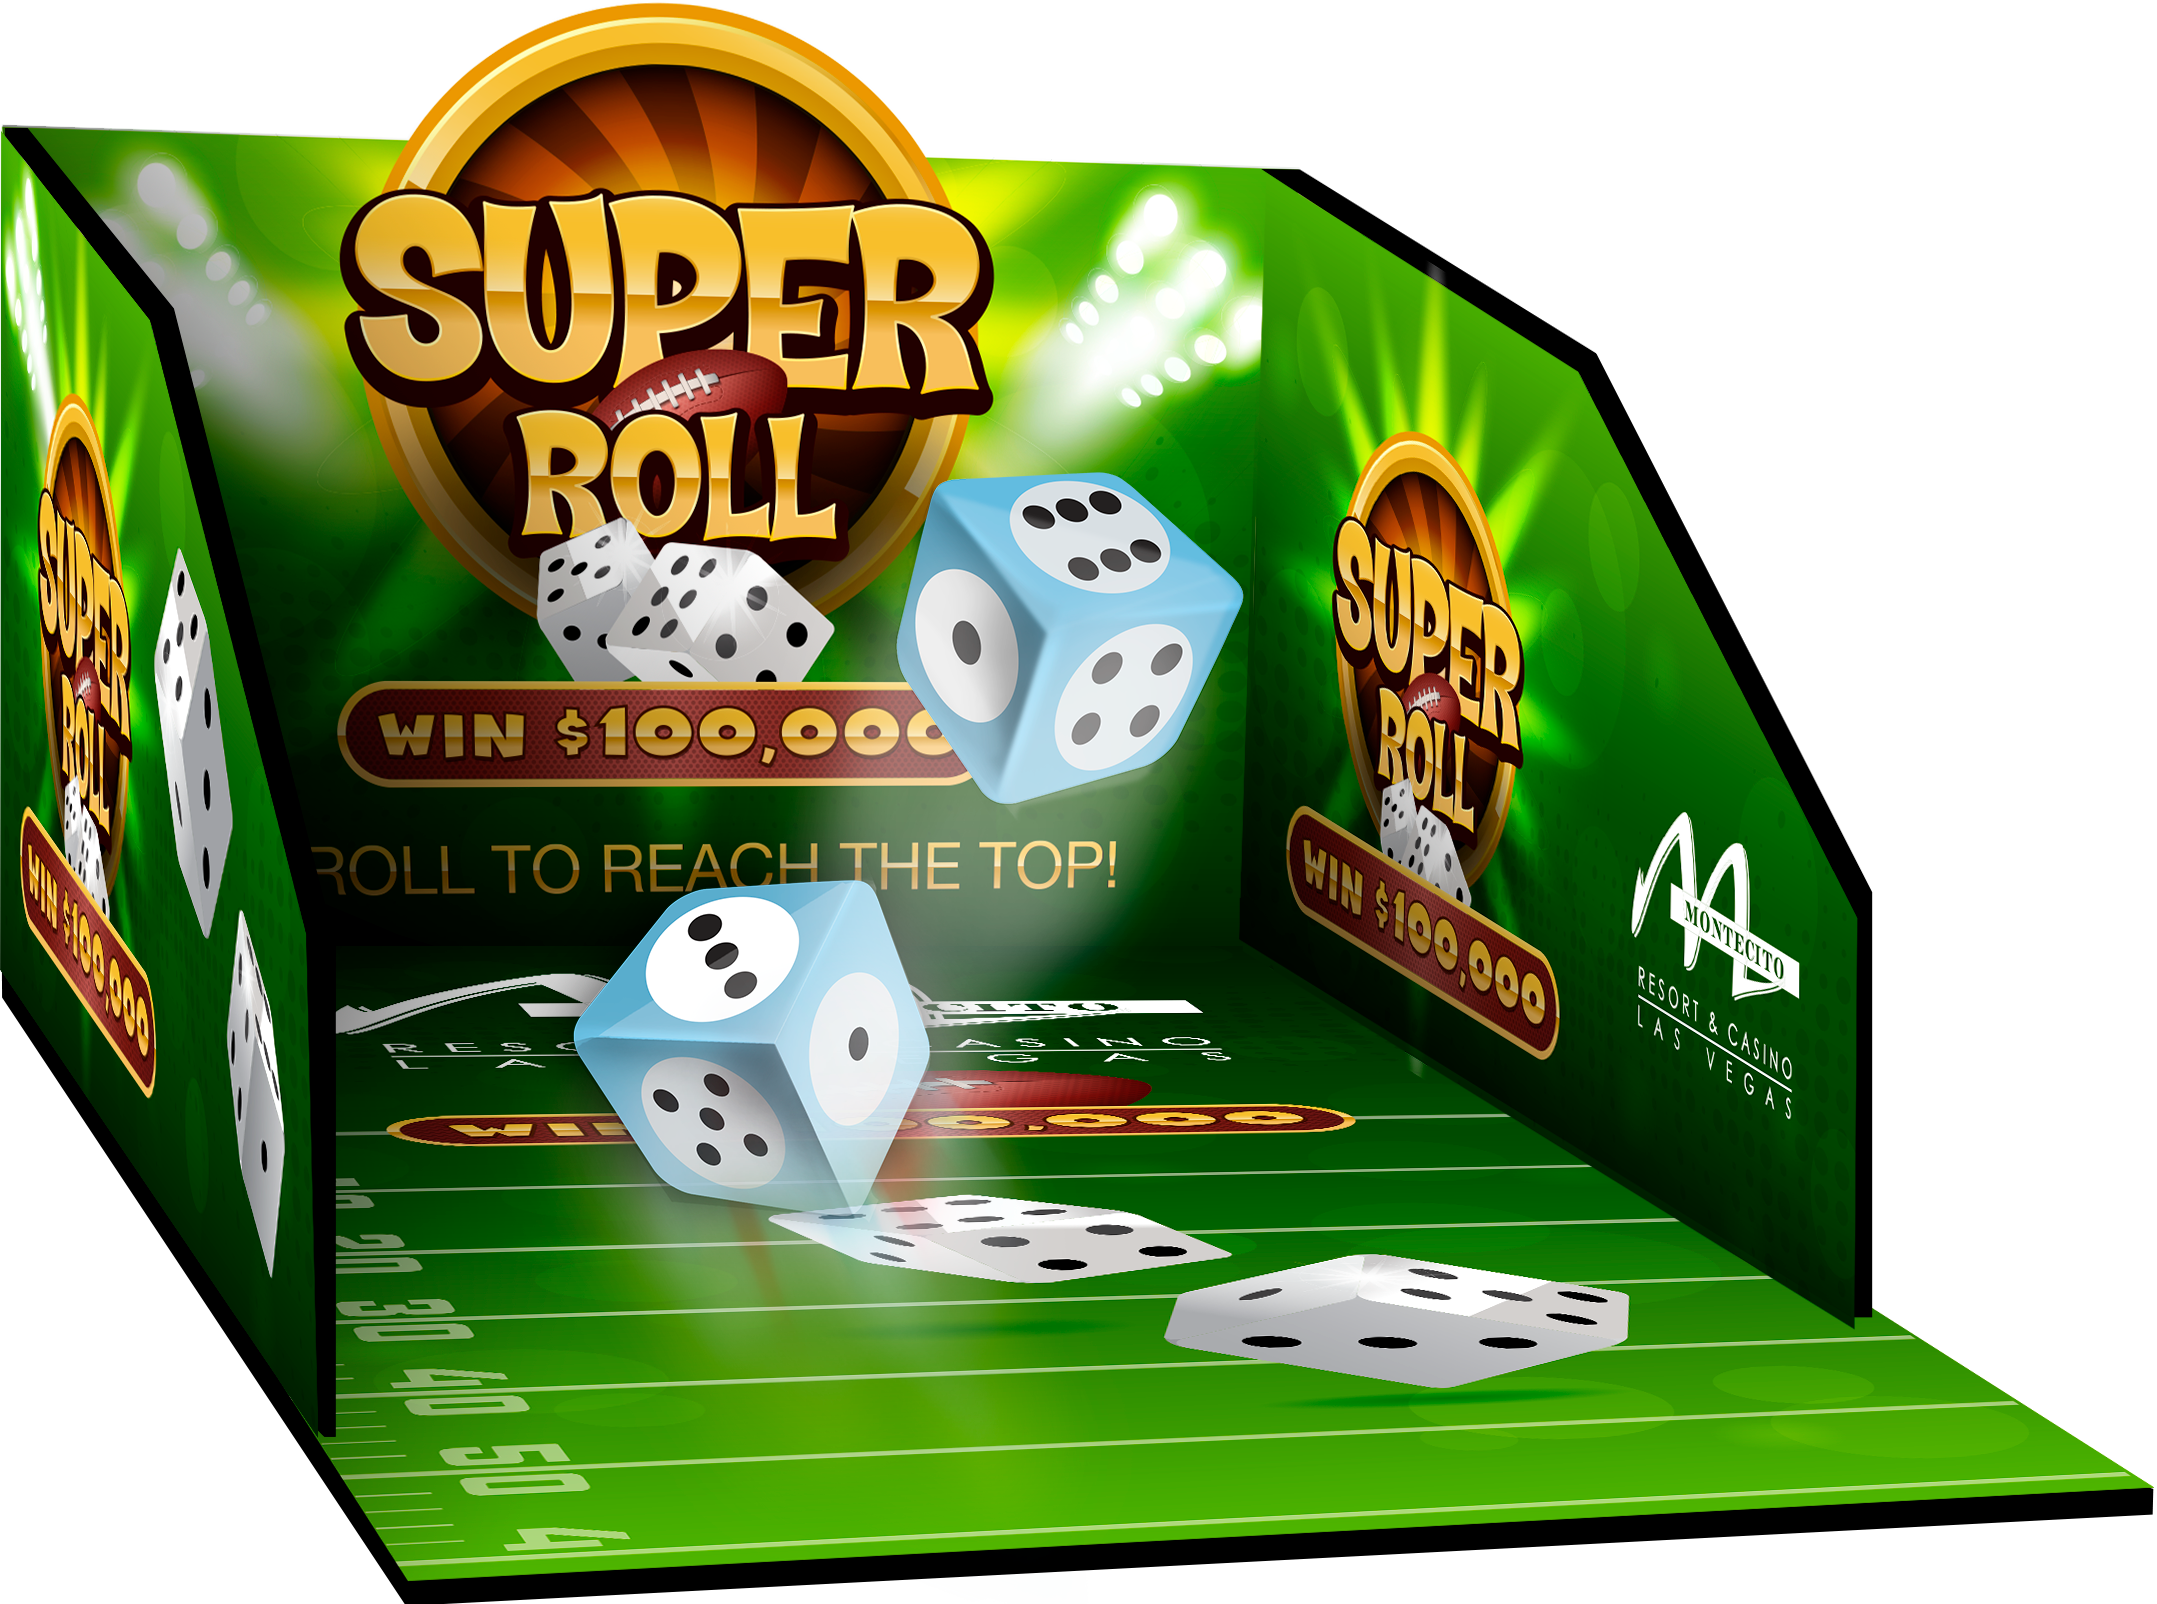 Dice Roll Box Super Roll